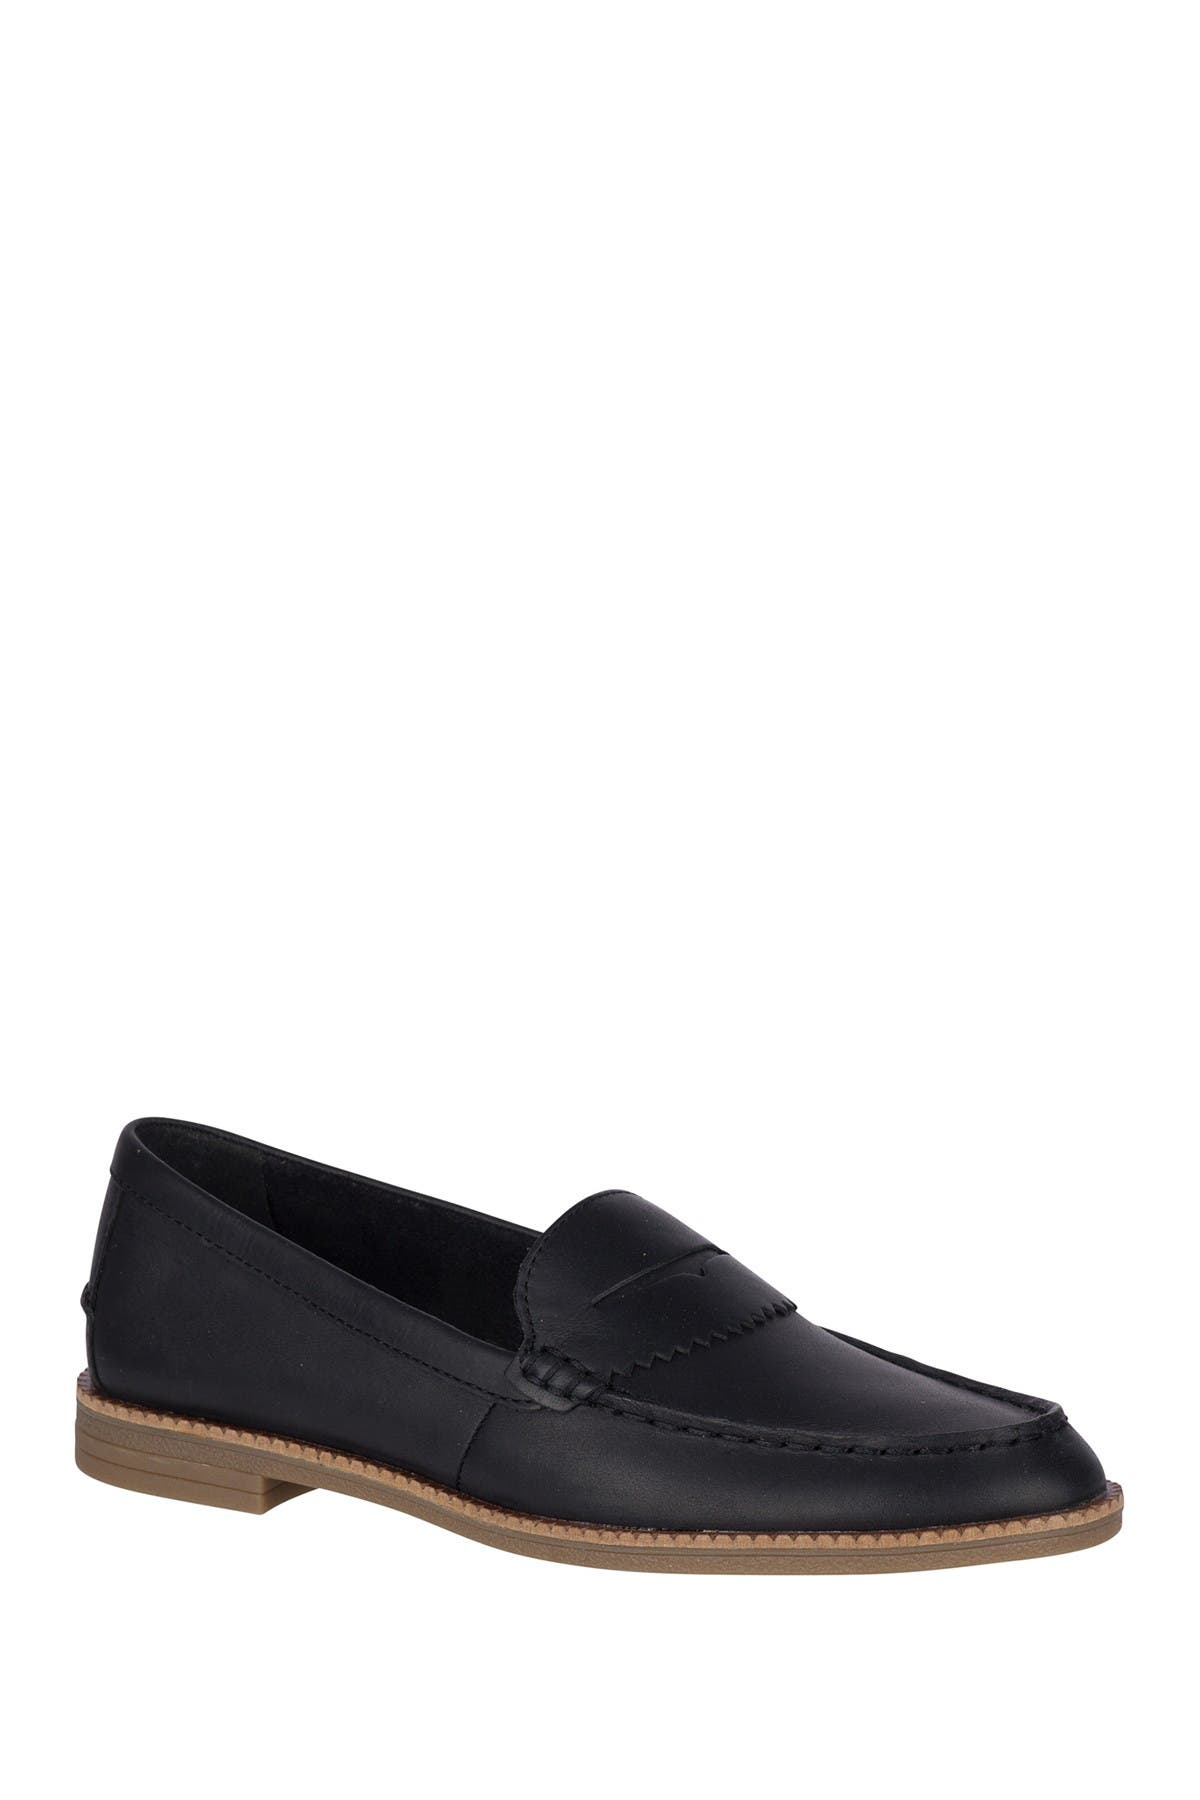 Sperry | Waypoint Penny Loafer